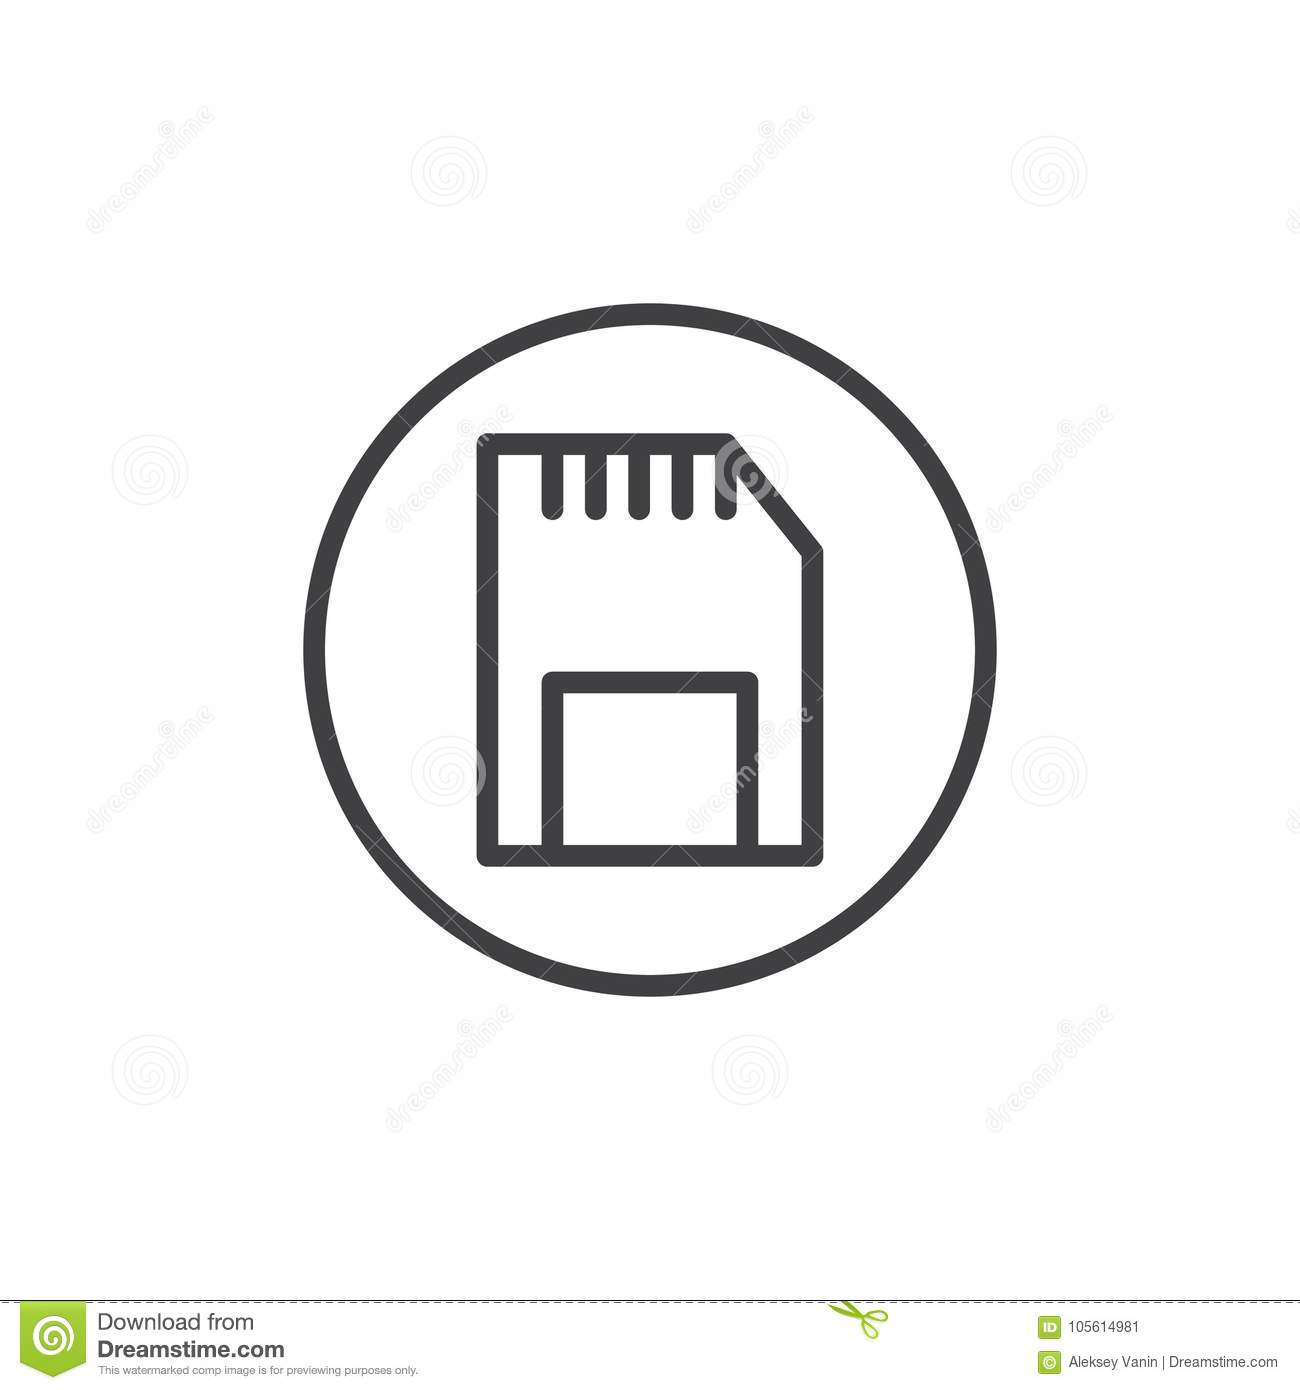 Sd Memory Card Line Icon Stock Vector Illustration Of Pixel 105614981